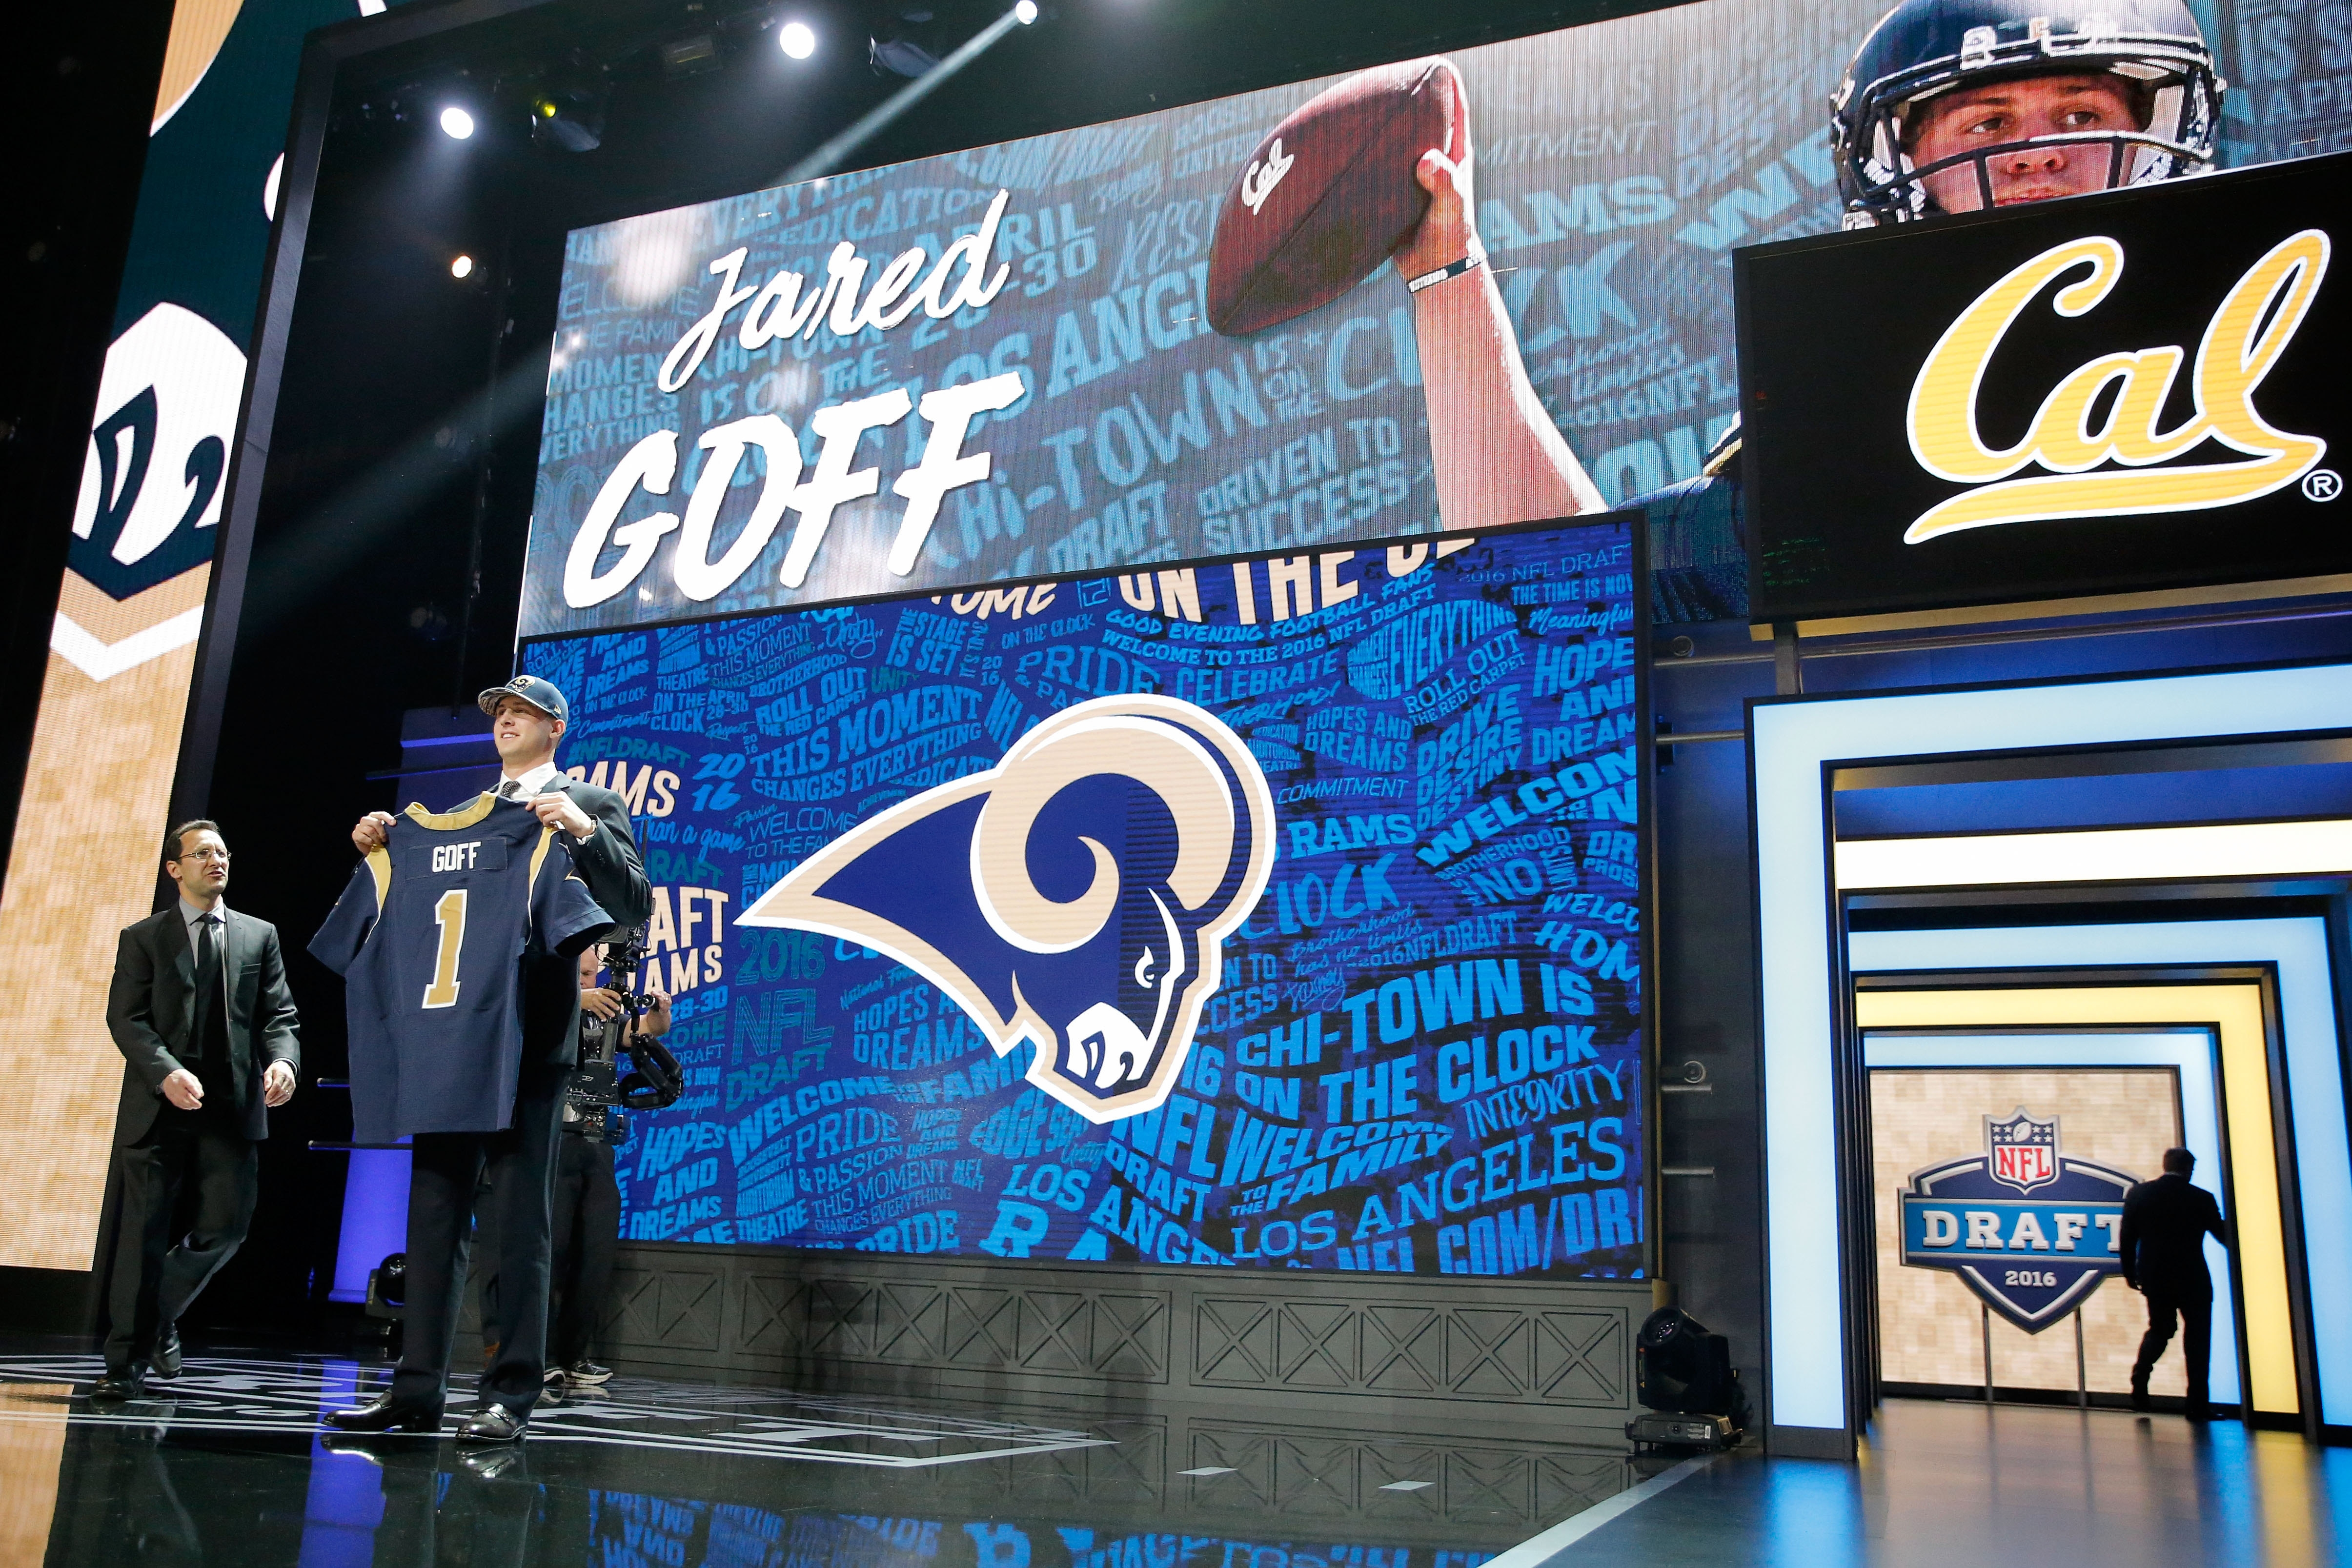 The Los Angeles Rams paid a steep price in draft picks in order to draft quarterback Jared Goff, and he could be the starter by the time they face the Bills in Week Five.